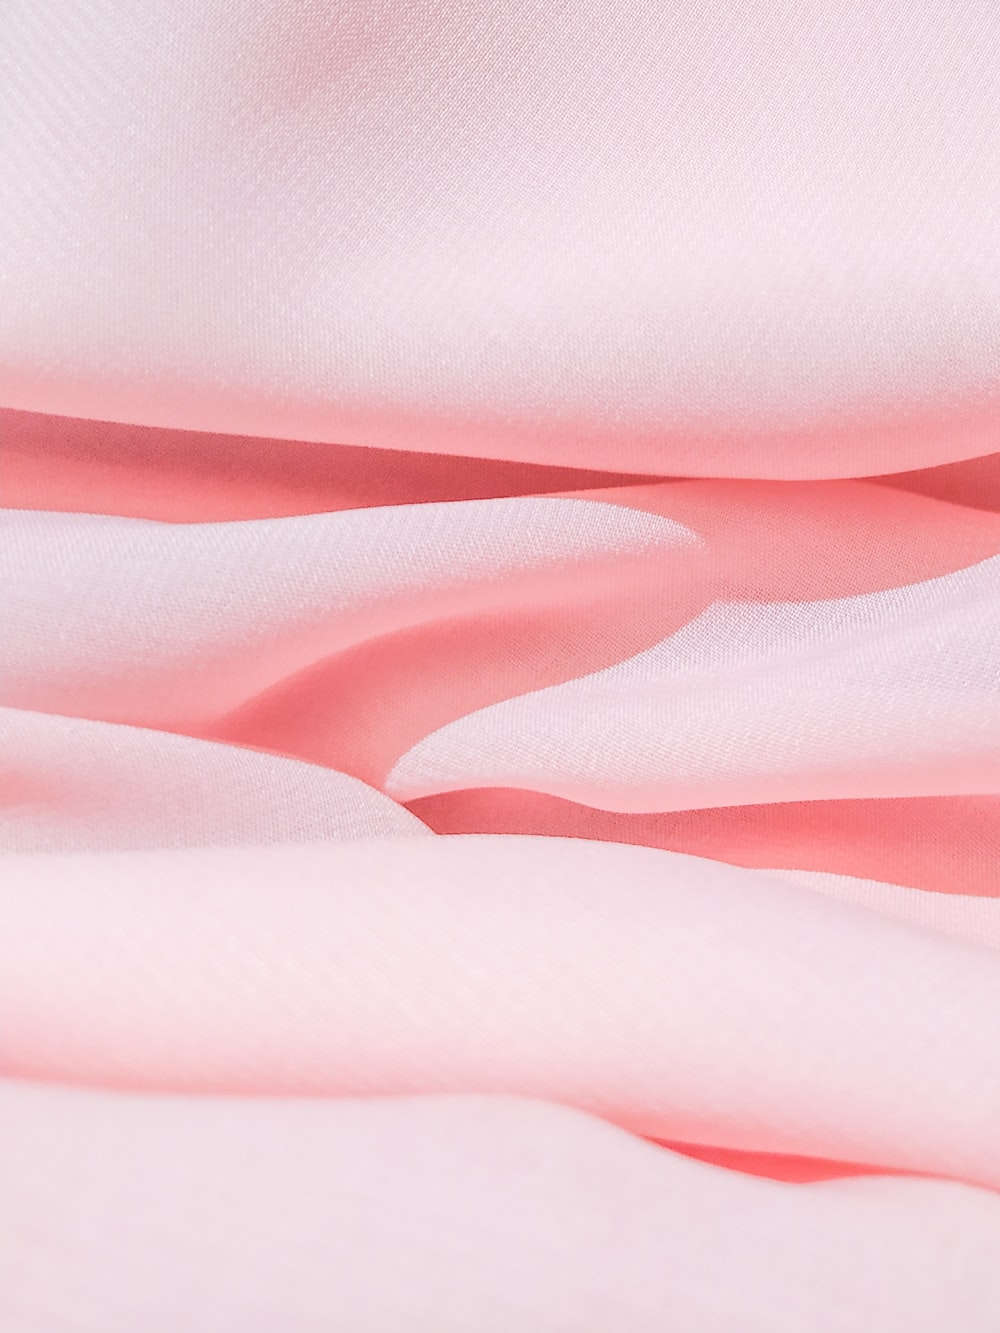 pink and white stripe textile